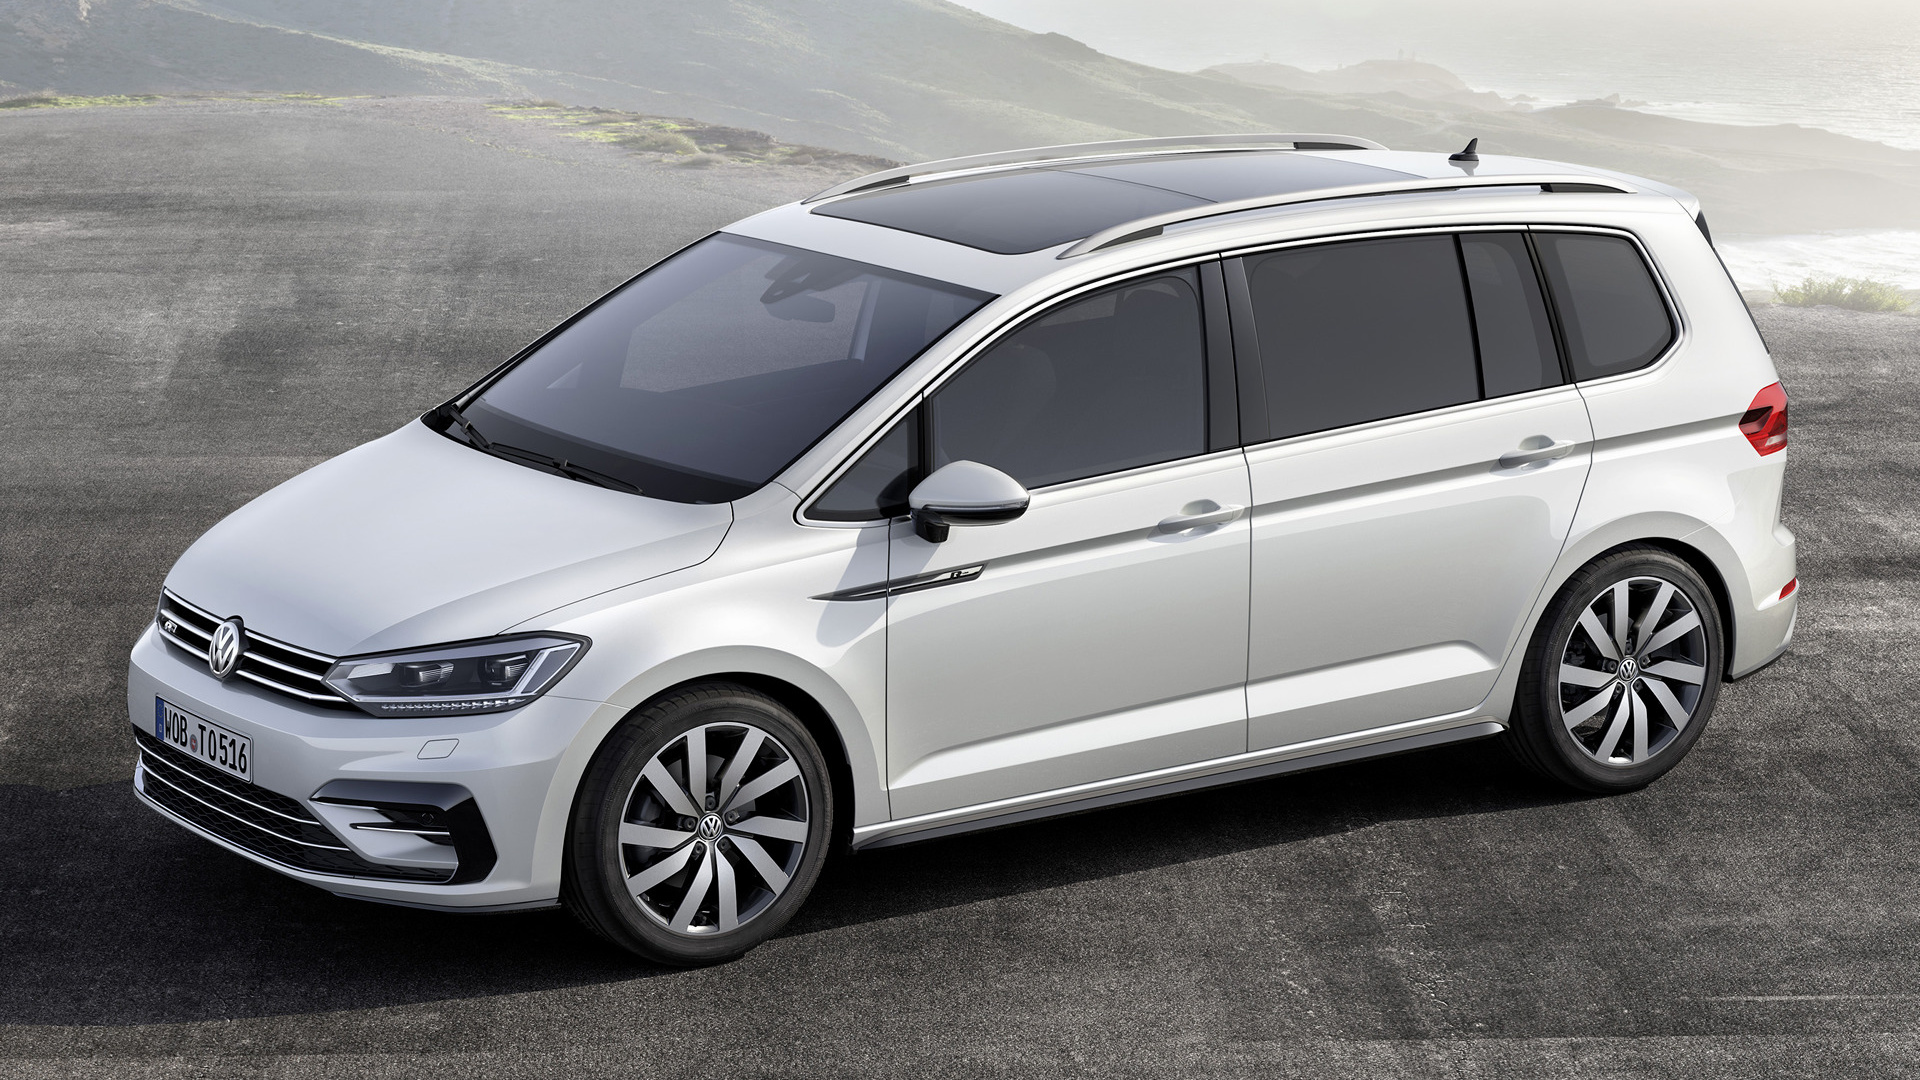 volkswagen touran r line 2015 wallpapers and hd images car pixel. Black Bedroom Furniture Sets. Home Design Ideas